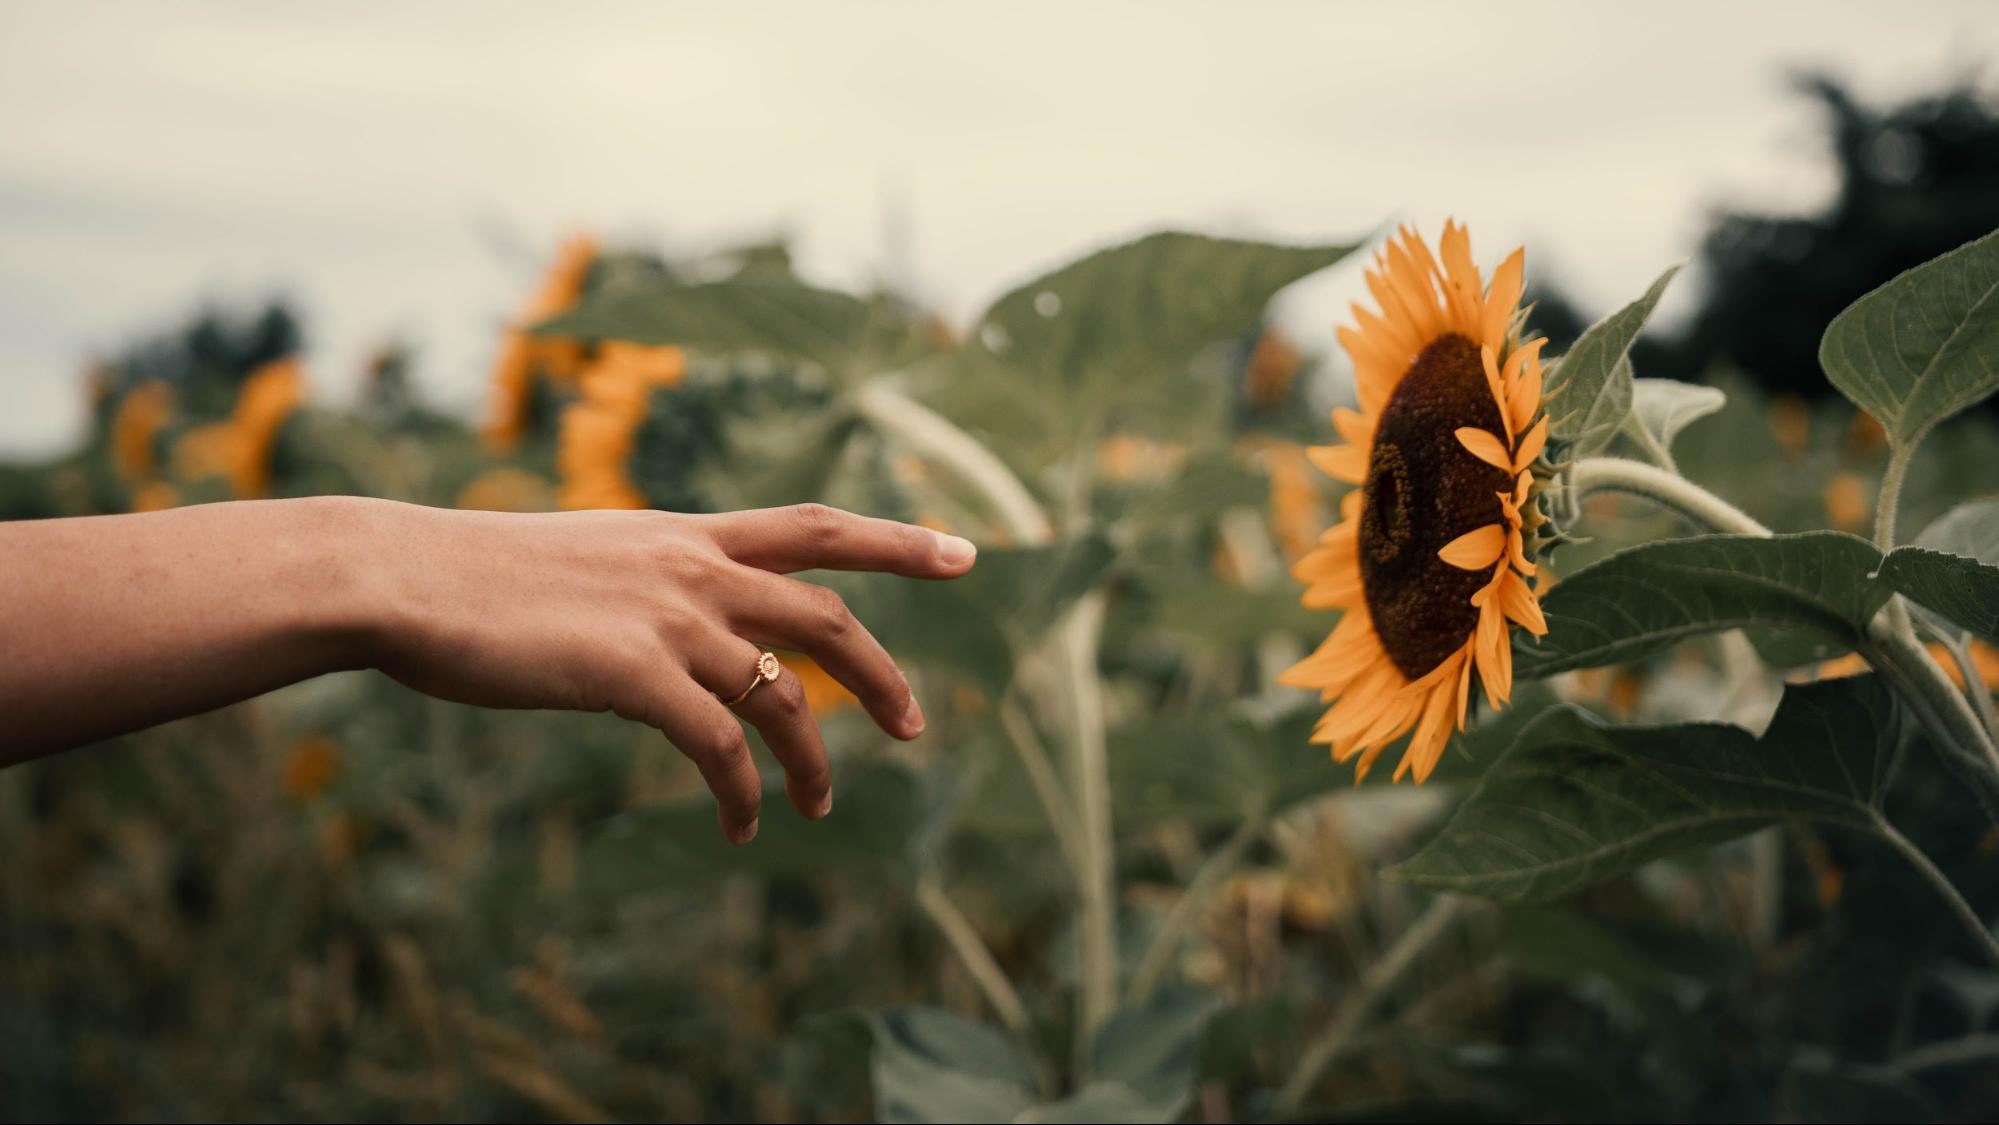 A hand wearing a ring from Nominal backdropped against a field of sunflowers.